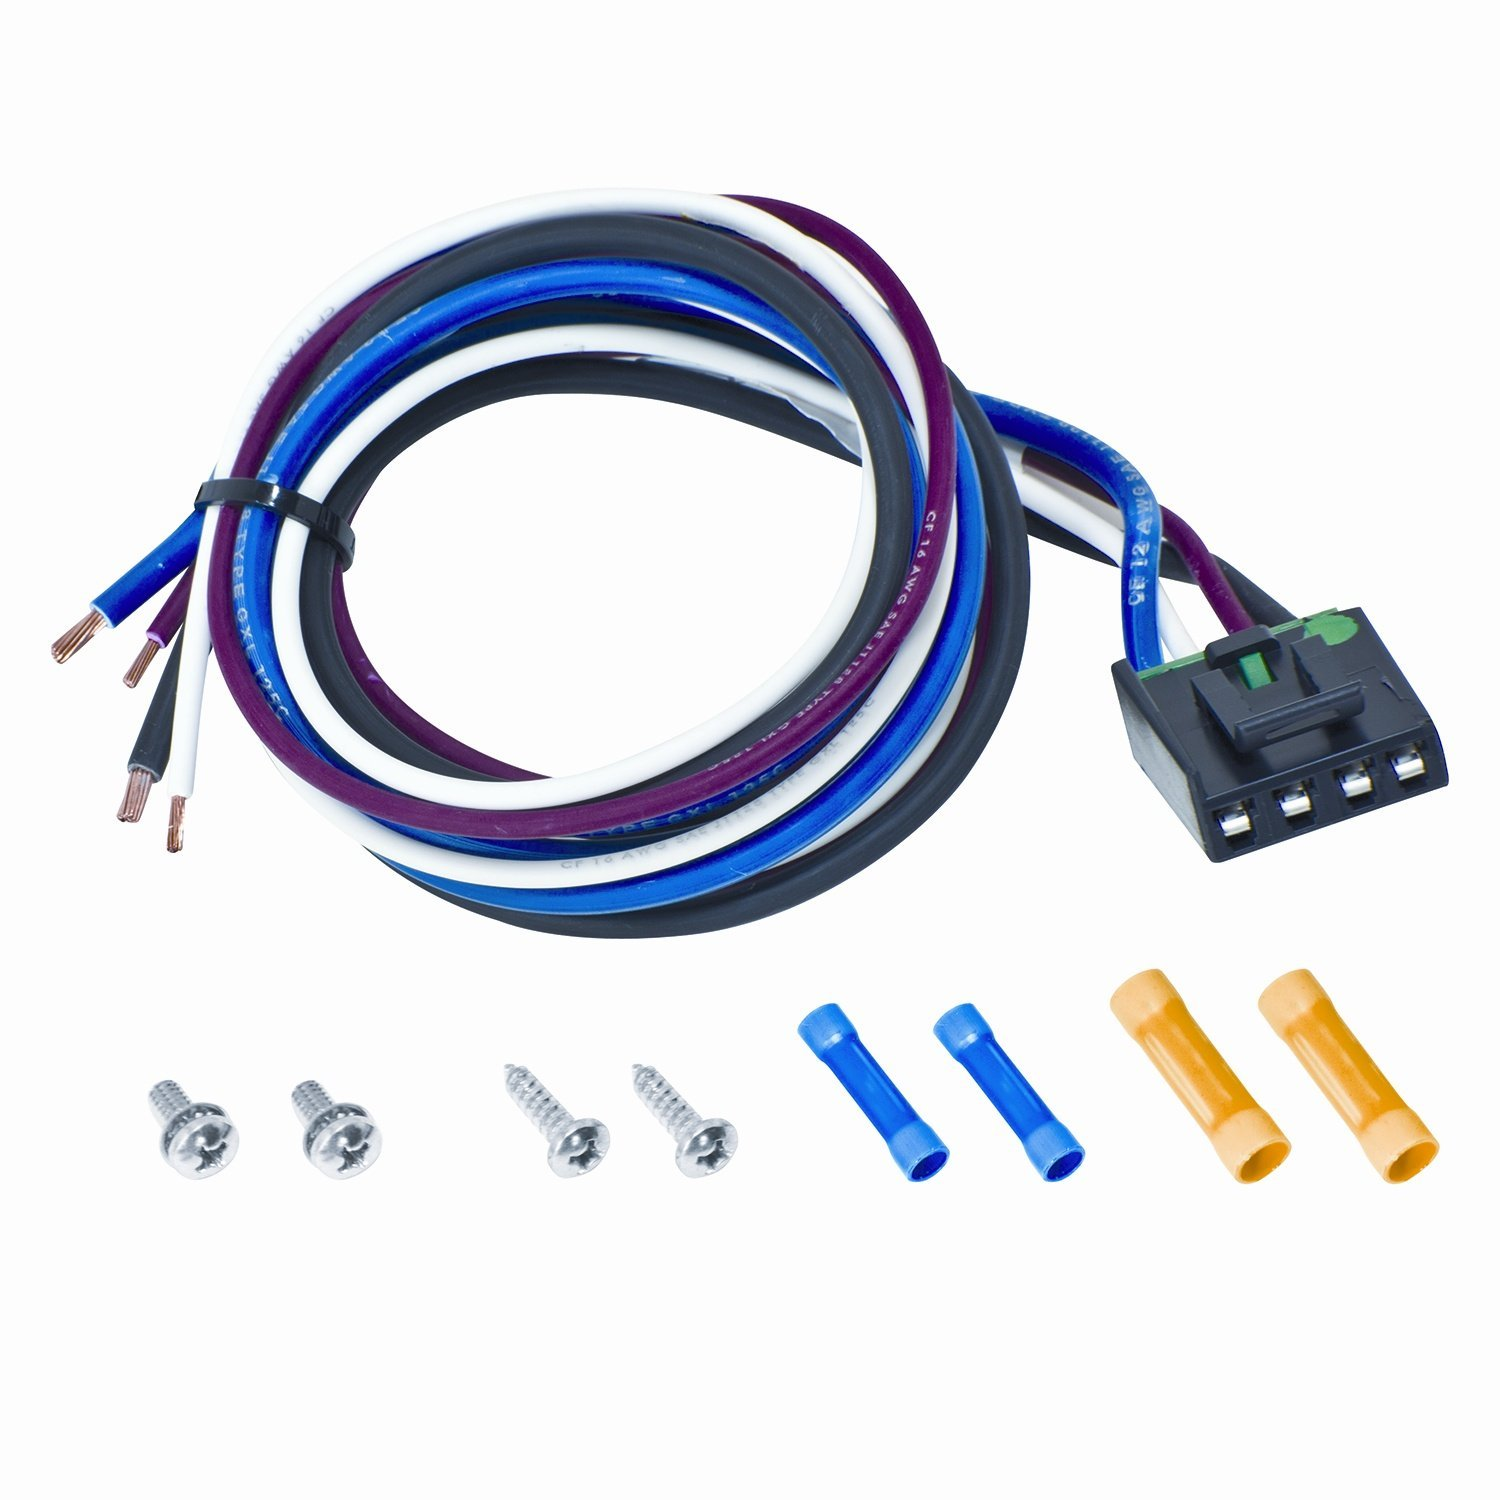 Prodigy Wiring Harness Kit